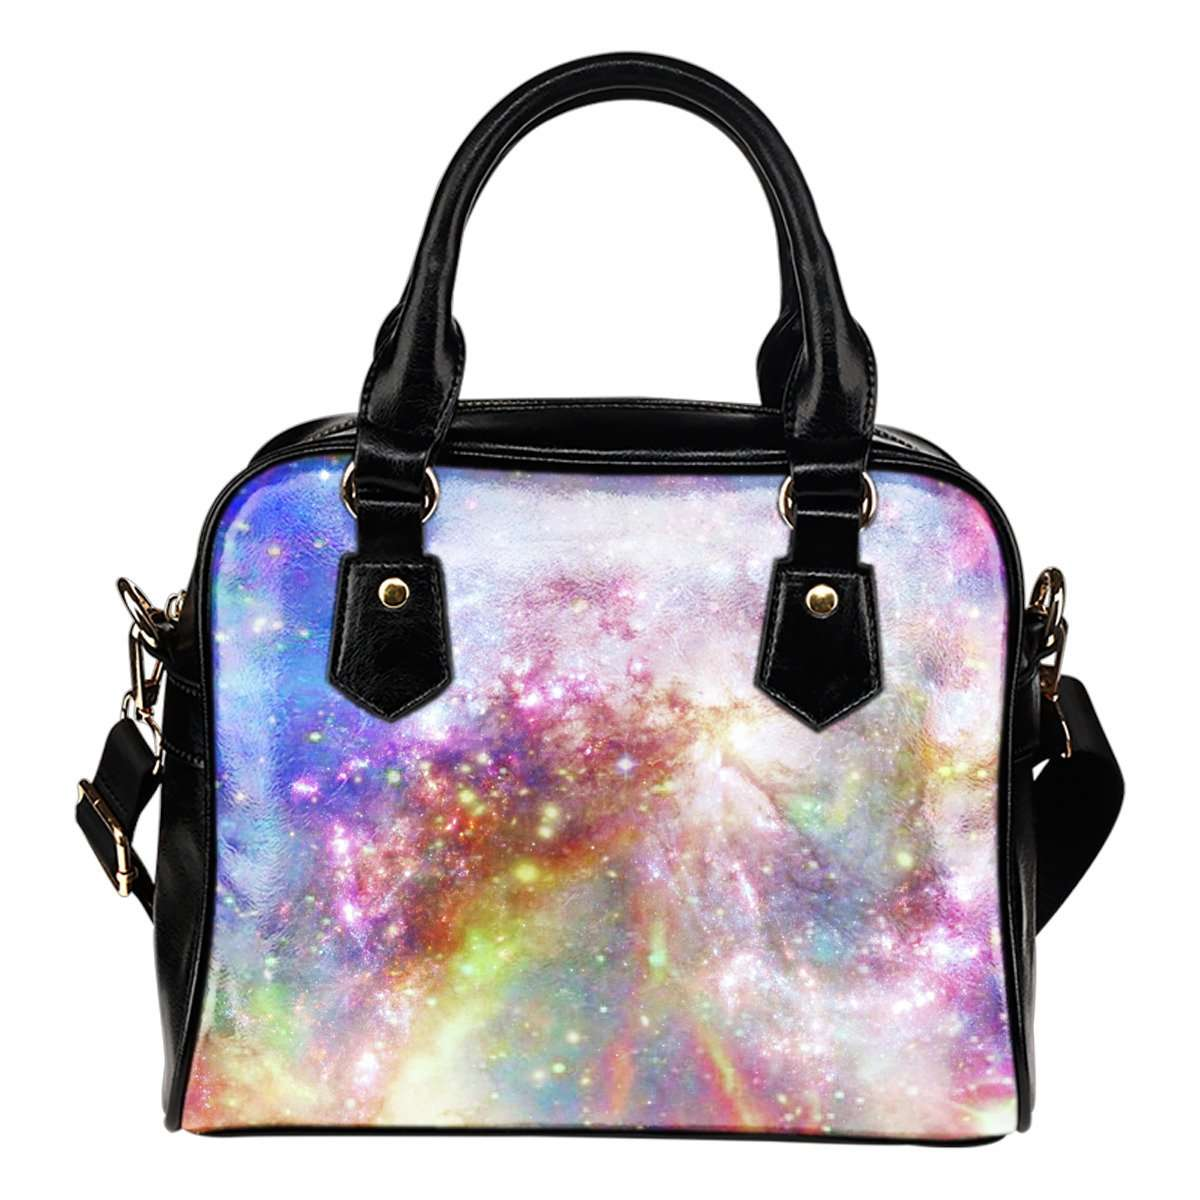 Pastel Galaxy 6 Shoulder Handbag - STUDIO 11 COUTURE